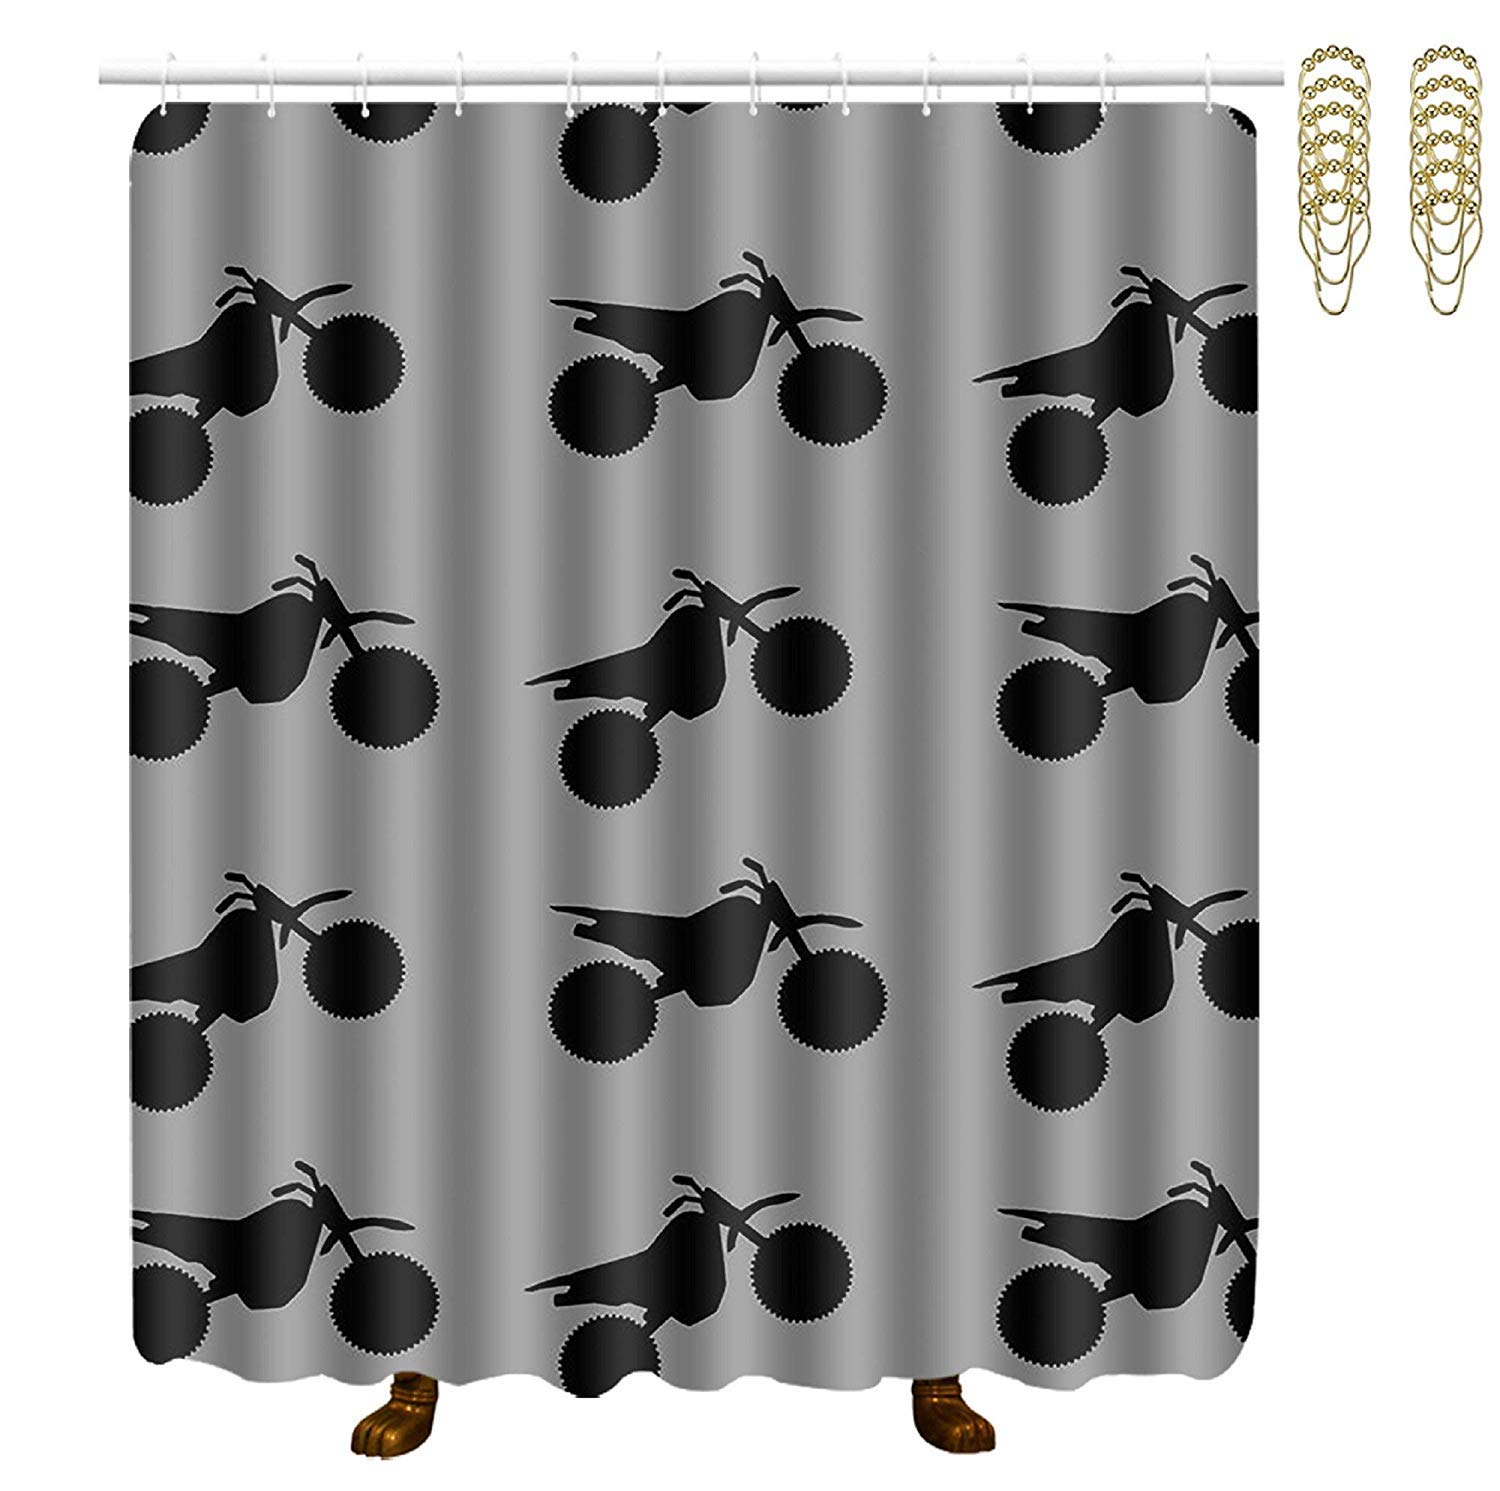 COVASA Decorative Water Repellant Shower Curtain 72x72 Inches Comes with 12 Hooks (Dirt Bike Black On Grey)